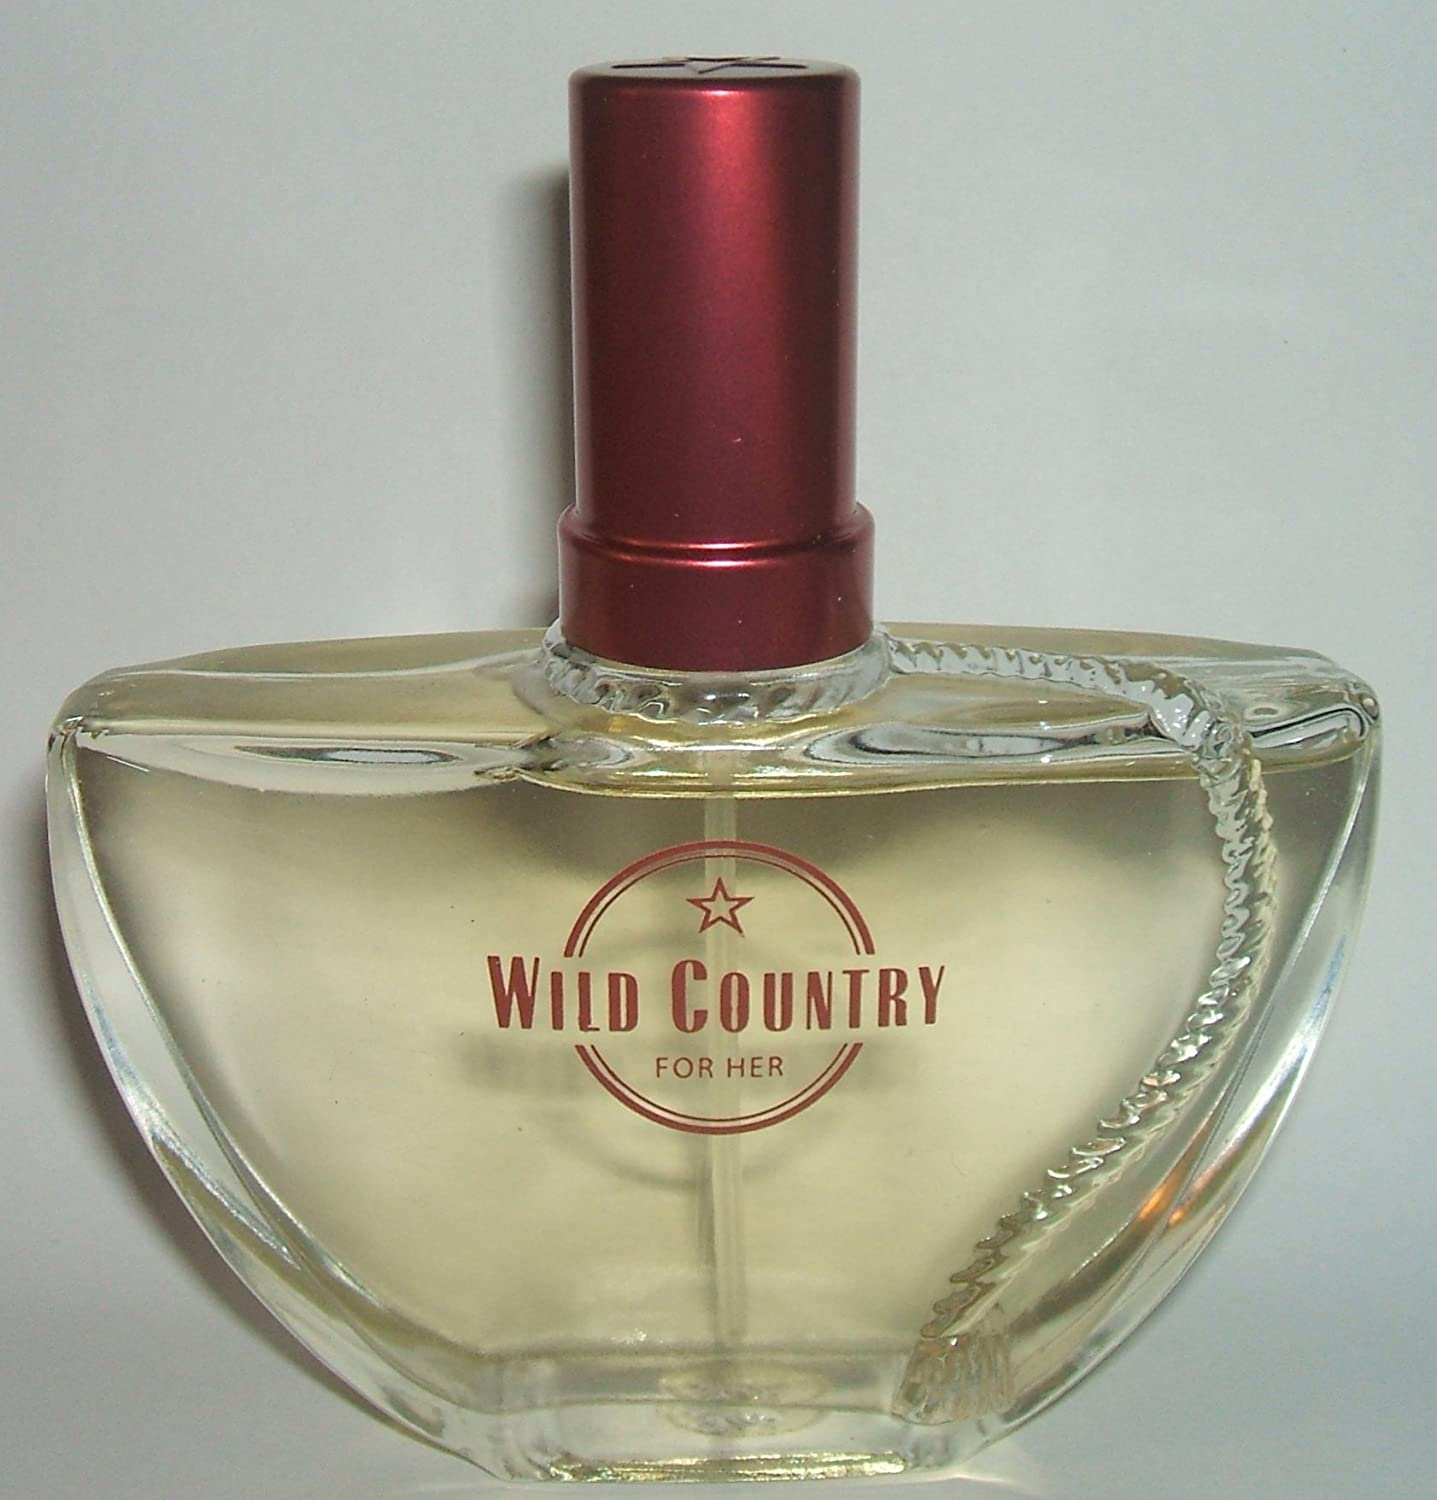 Wild Country for Her de Industry No. 1 Eau Toilette Spray Bombing new work